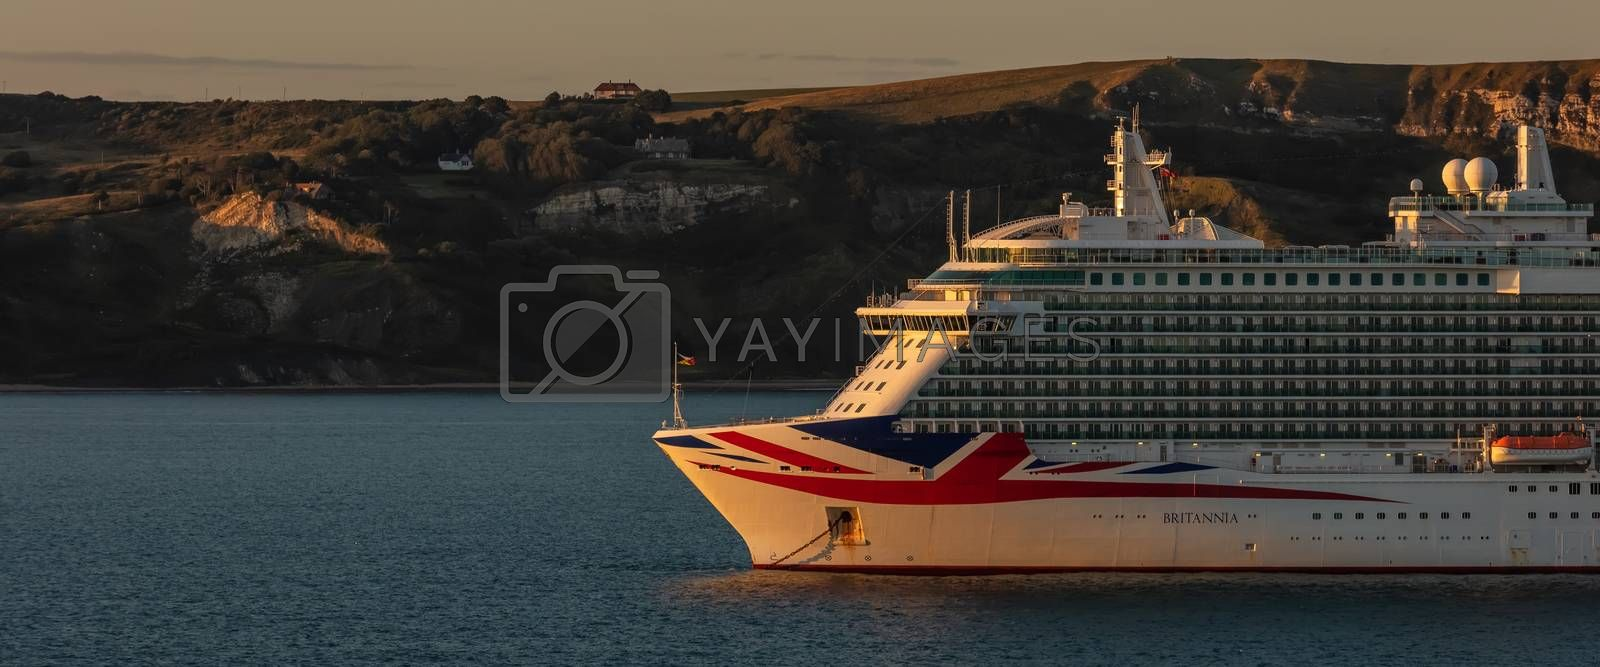 Weymouth Bay, United Kingdom - July 6, 2020: Beautiful panoramic shot of P&O cruise ship Britannia anchored in Weymouth Bay at sunset.